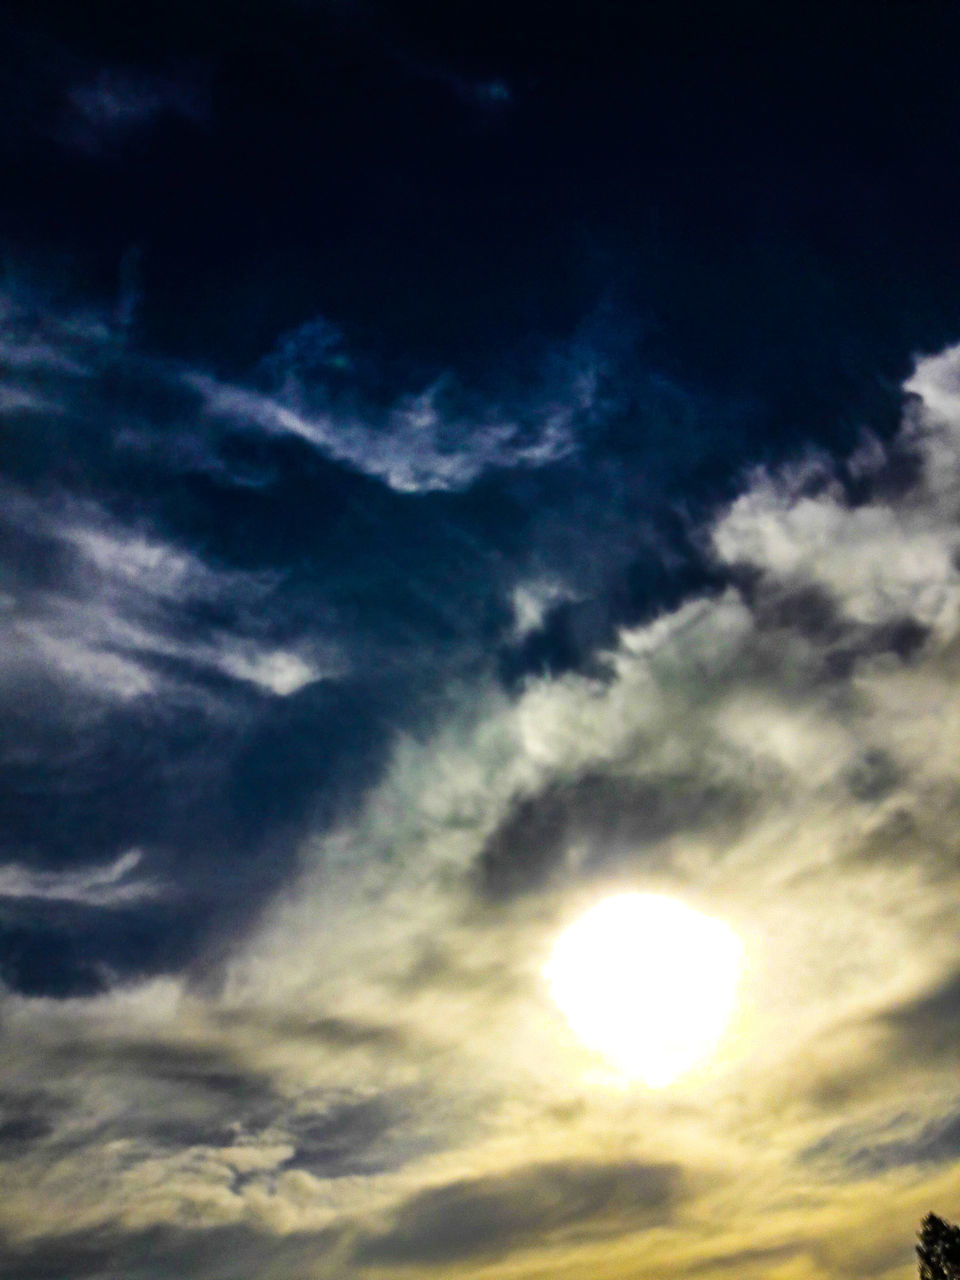 sky, cloud - sky, beauty in nature, low angle view, cloudscape, scenics, nature, sky only, tranquil scene, sun, no people, tranquility, outdoors, backgrounds, sunset, sunlight, day